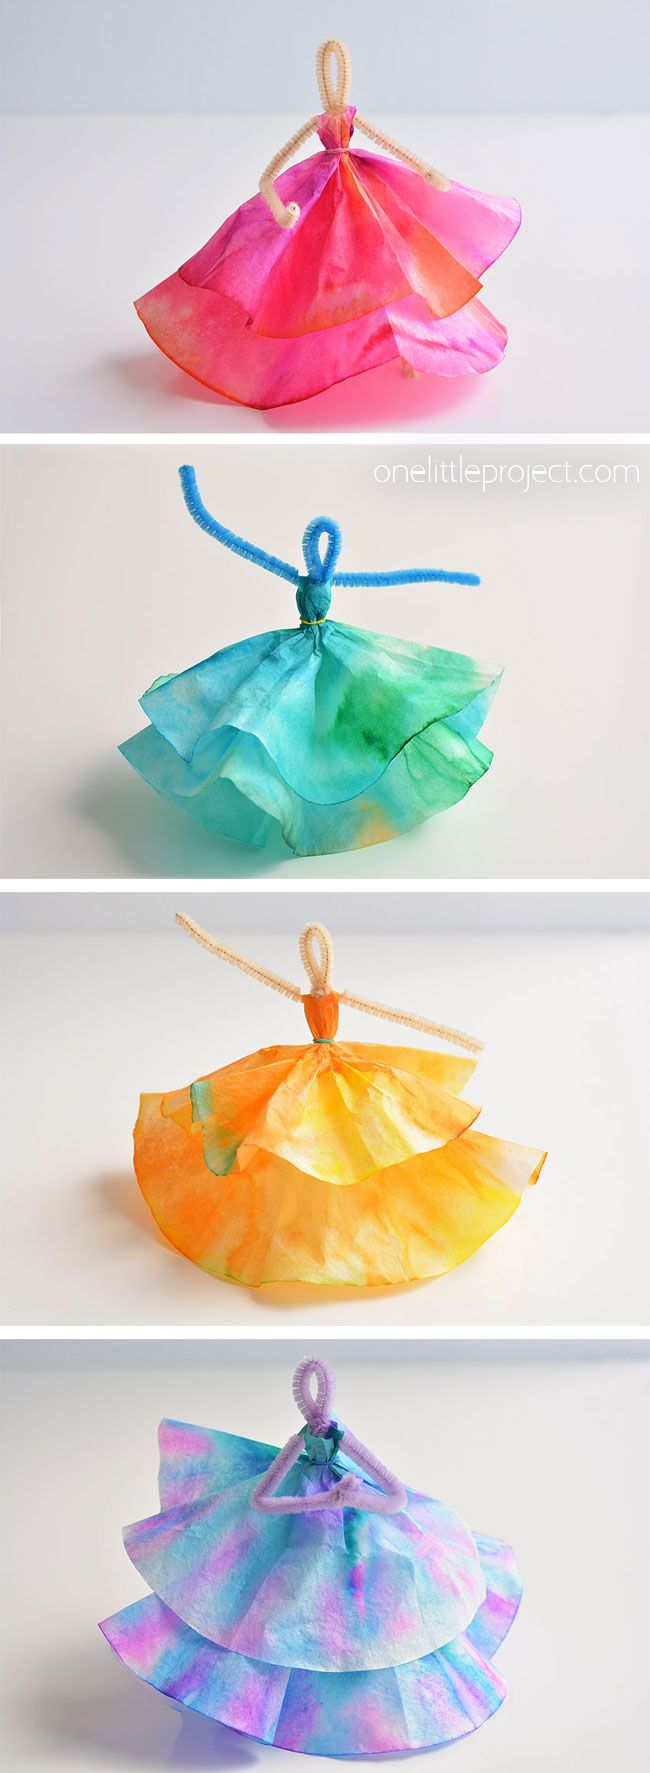 How to Make Coffee Filter Dancers | Coffee filter crafts ...